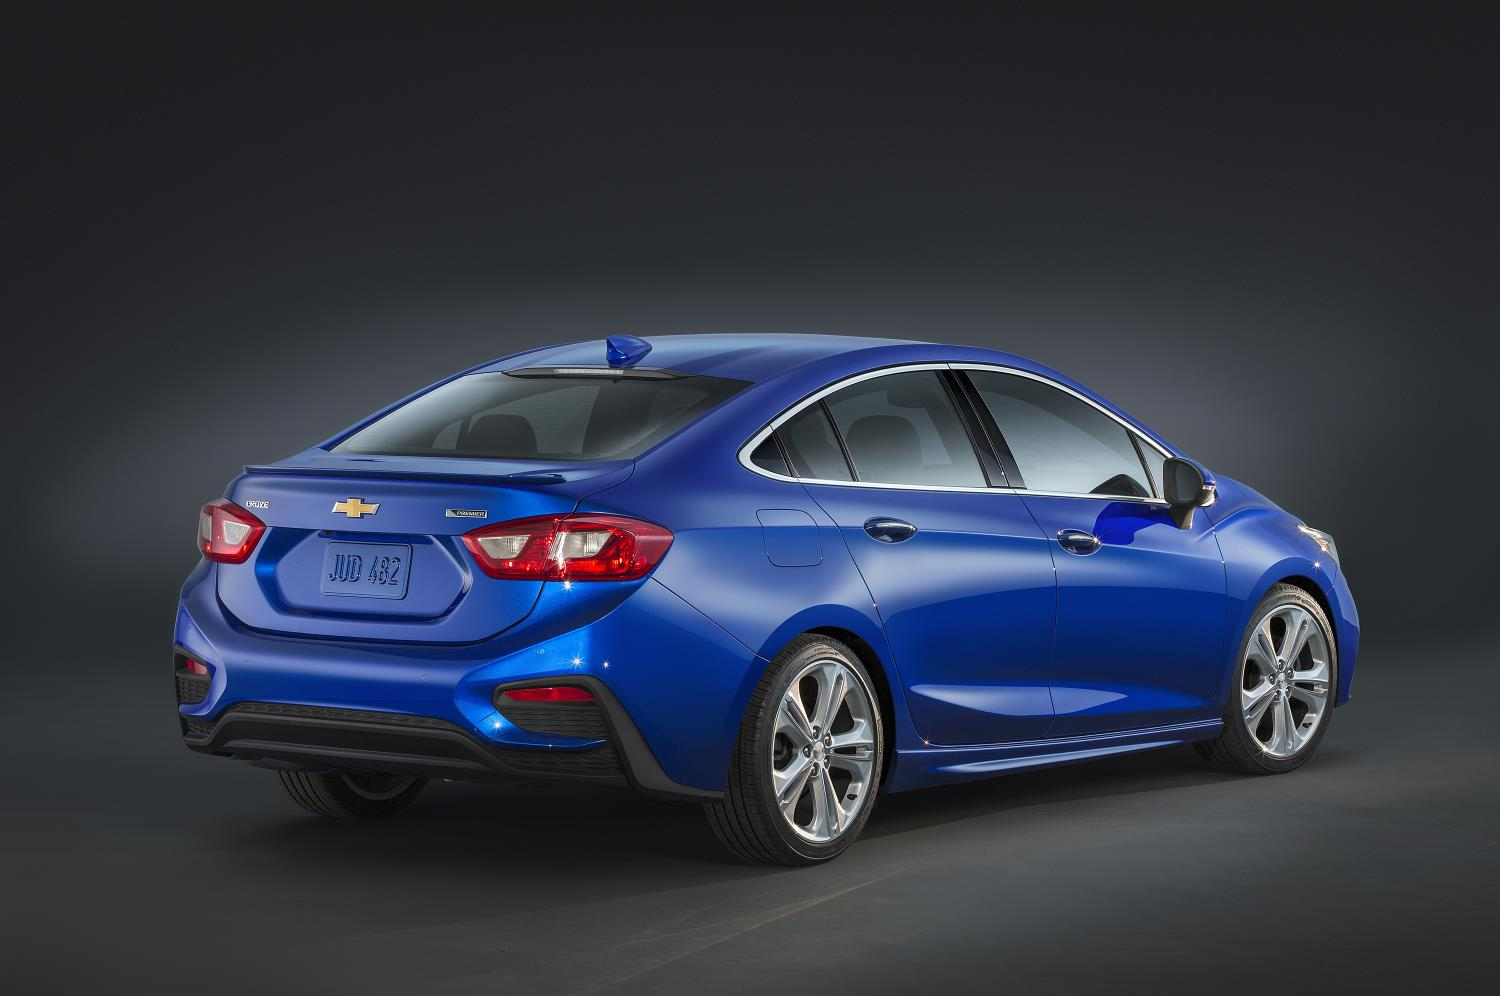 2016 Chevrolet Cruze Fuel Economy Released, Cruze Diesel Returns in ...